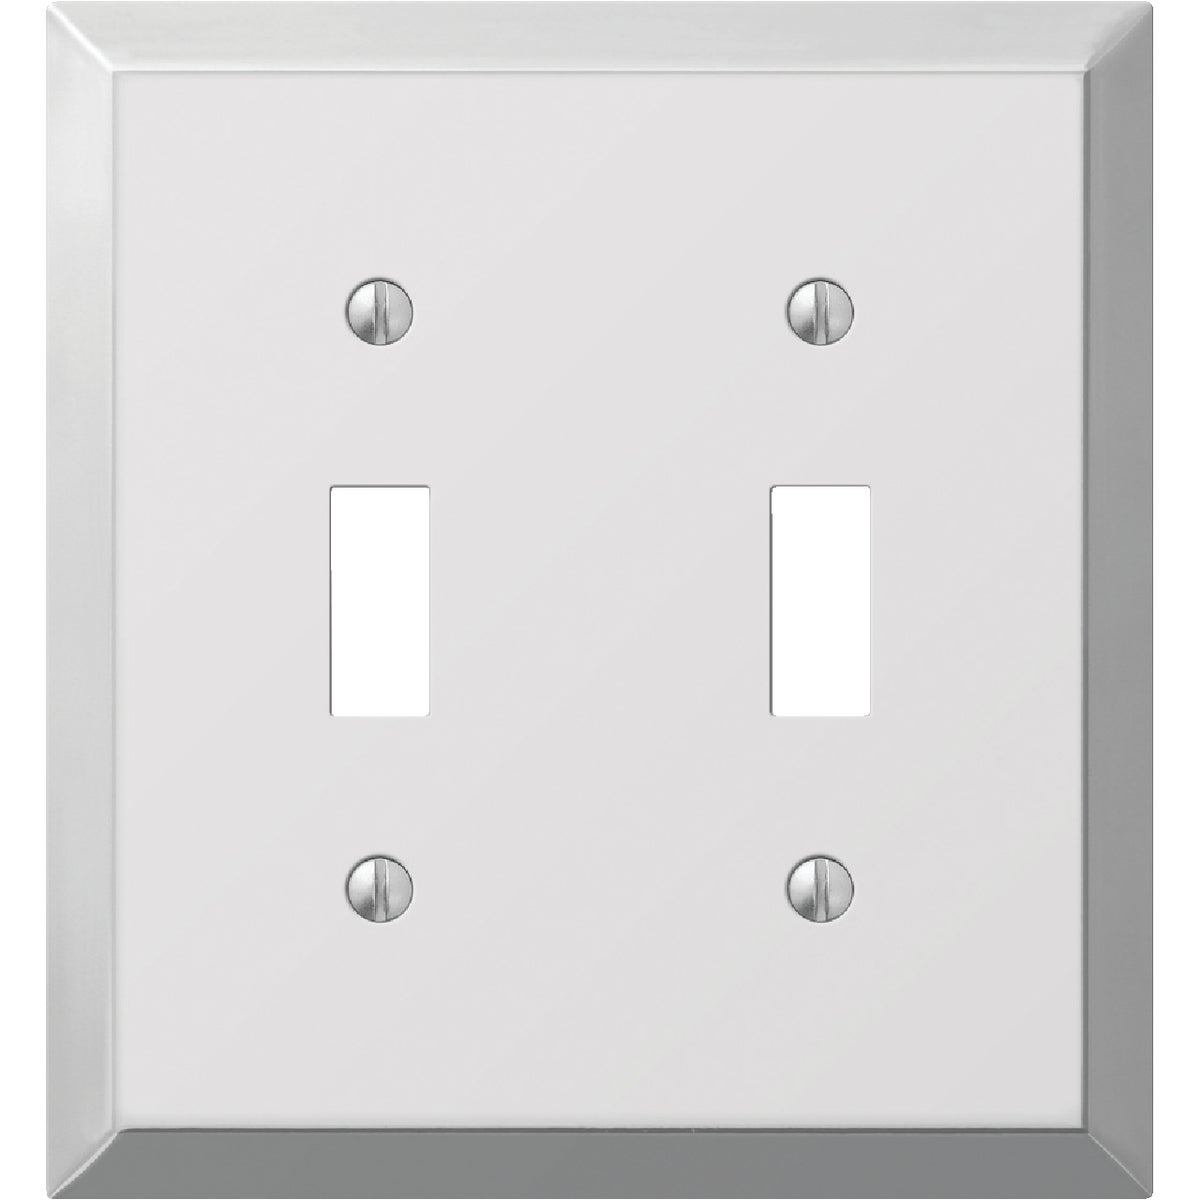 CHR 2-TOGGLE WALL PLATE - 9CS102 by Jackson Deerfield Mf